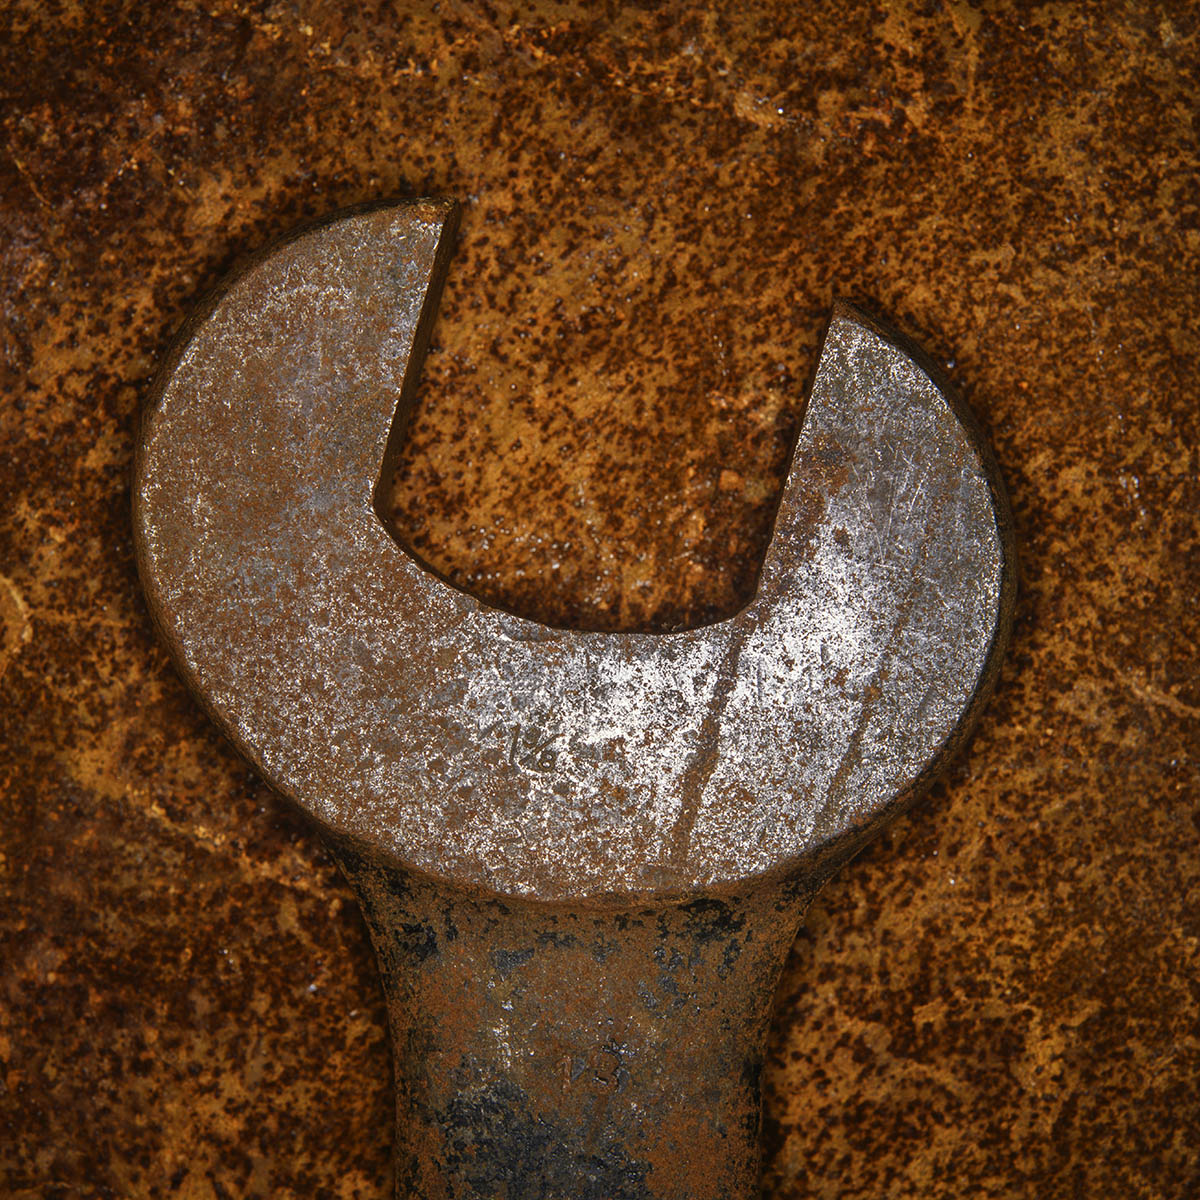 Free stock photo Rusted old wrench on a rusted background